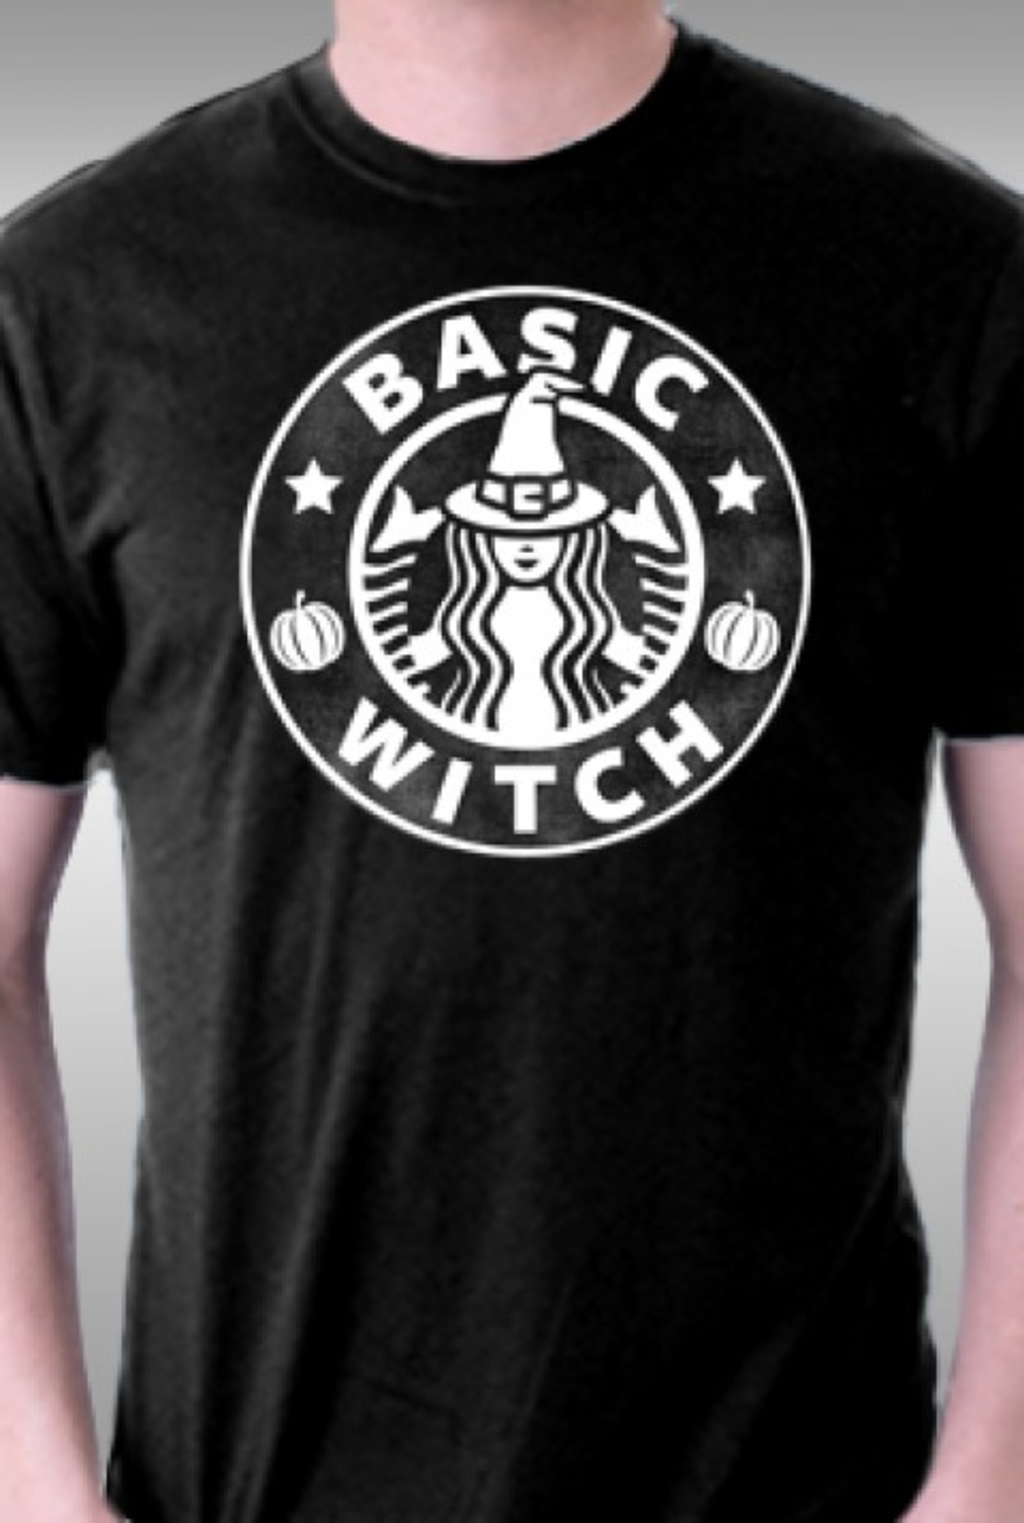 TeeFury: Basic Witch